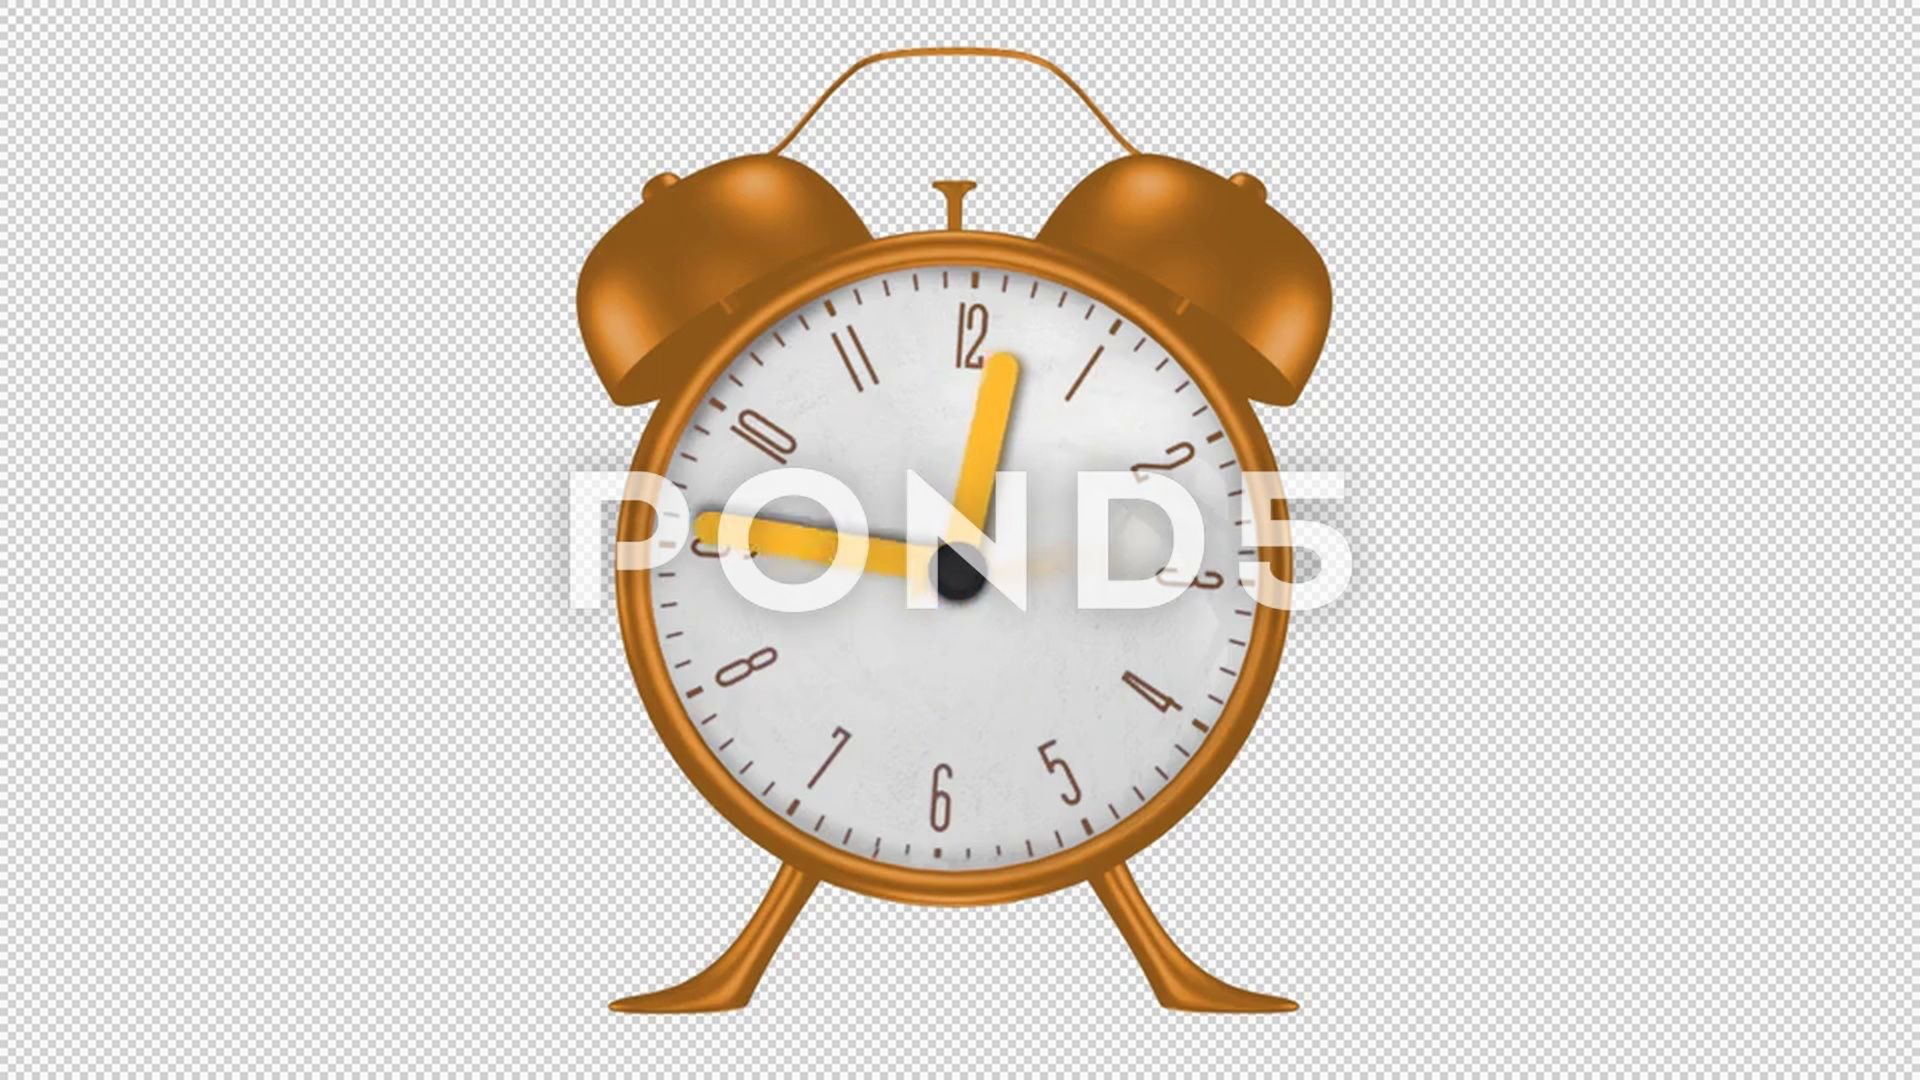 3d Animated Alarm Clock Looped Alpha Channel Included Stock Footage Ad Clock Looped Animated Alarm Alpha Channel Alarm Clock 3d Animation